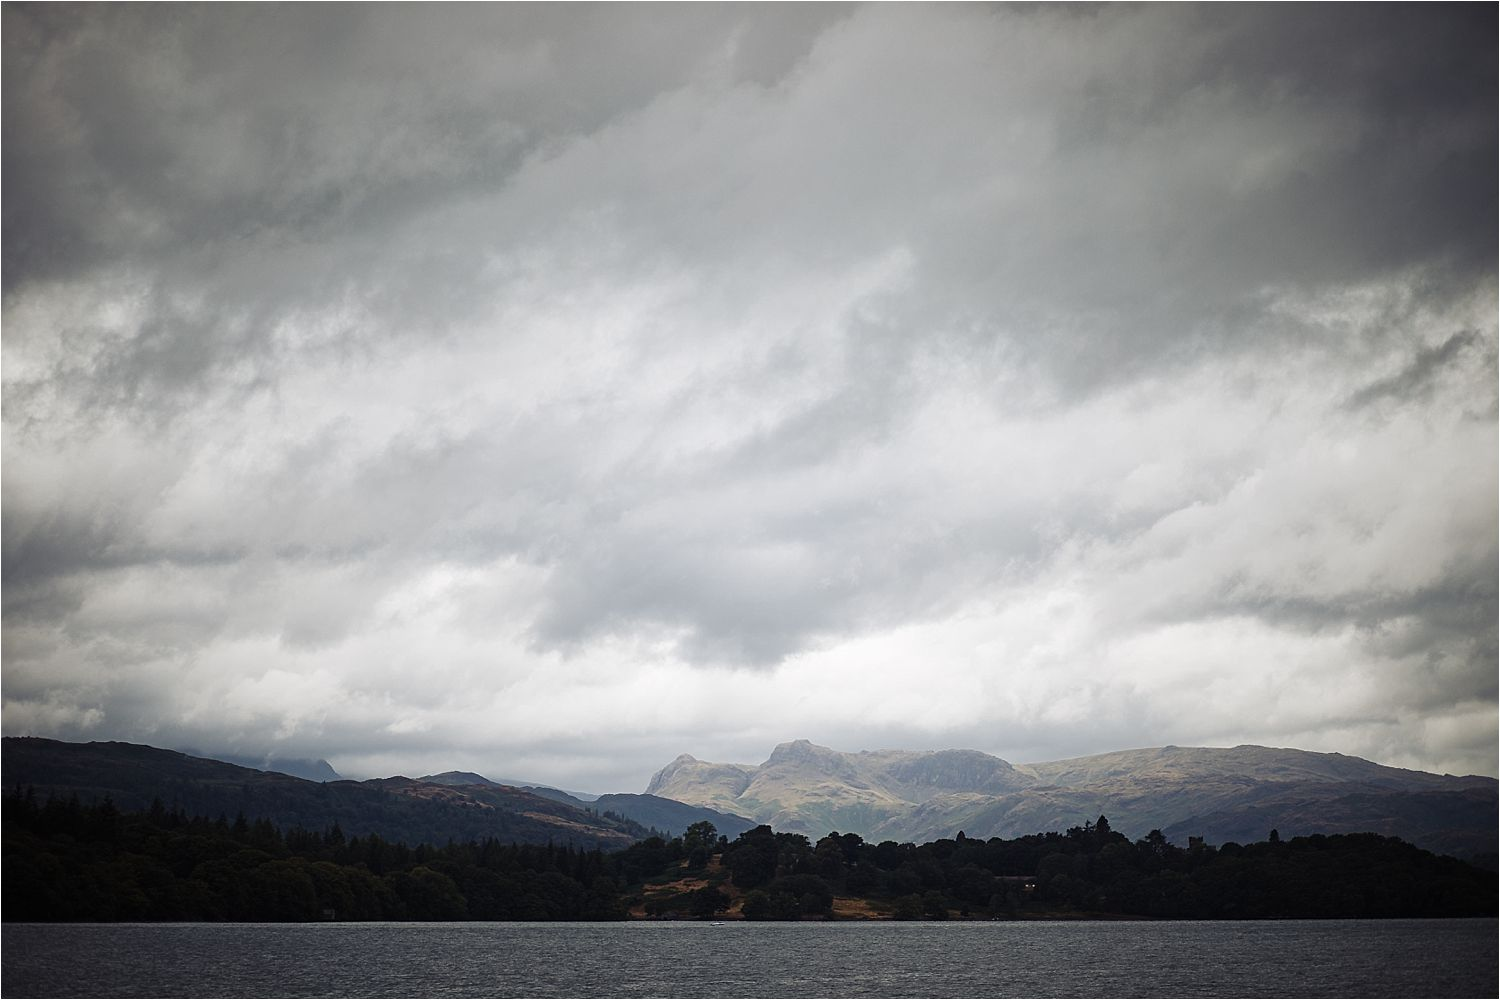 Lake District panoramic view from the middle of Lake Windermere.